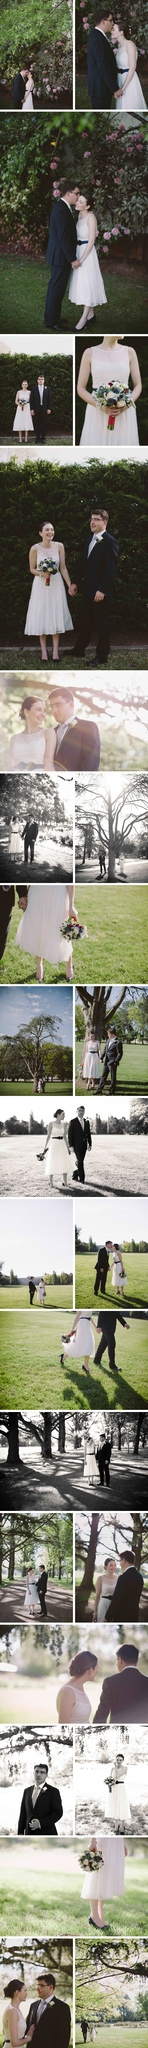 Canberra Wedding Photos